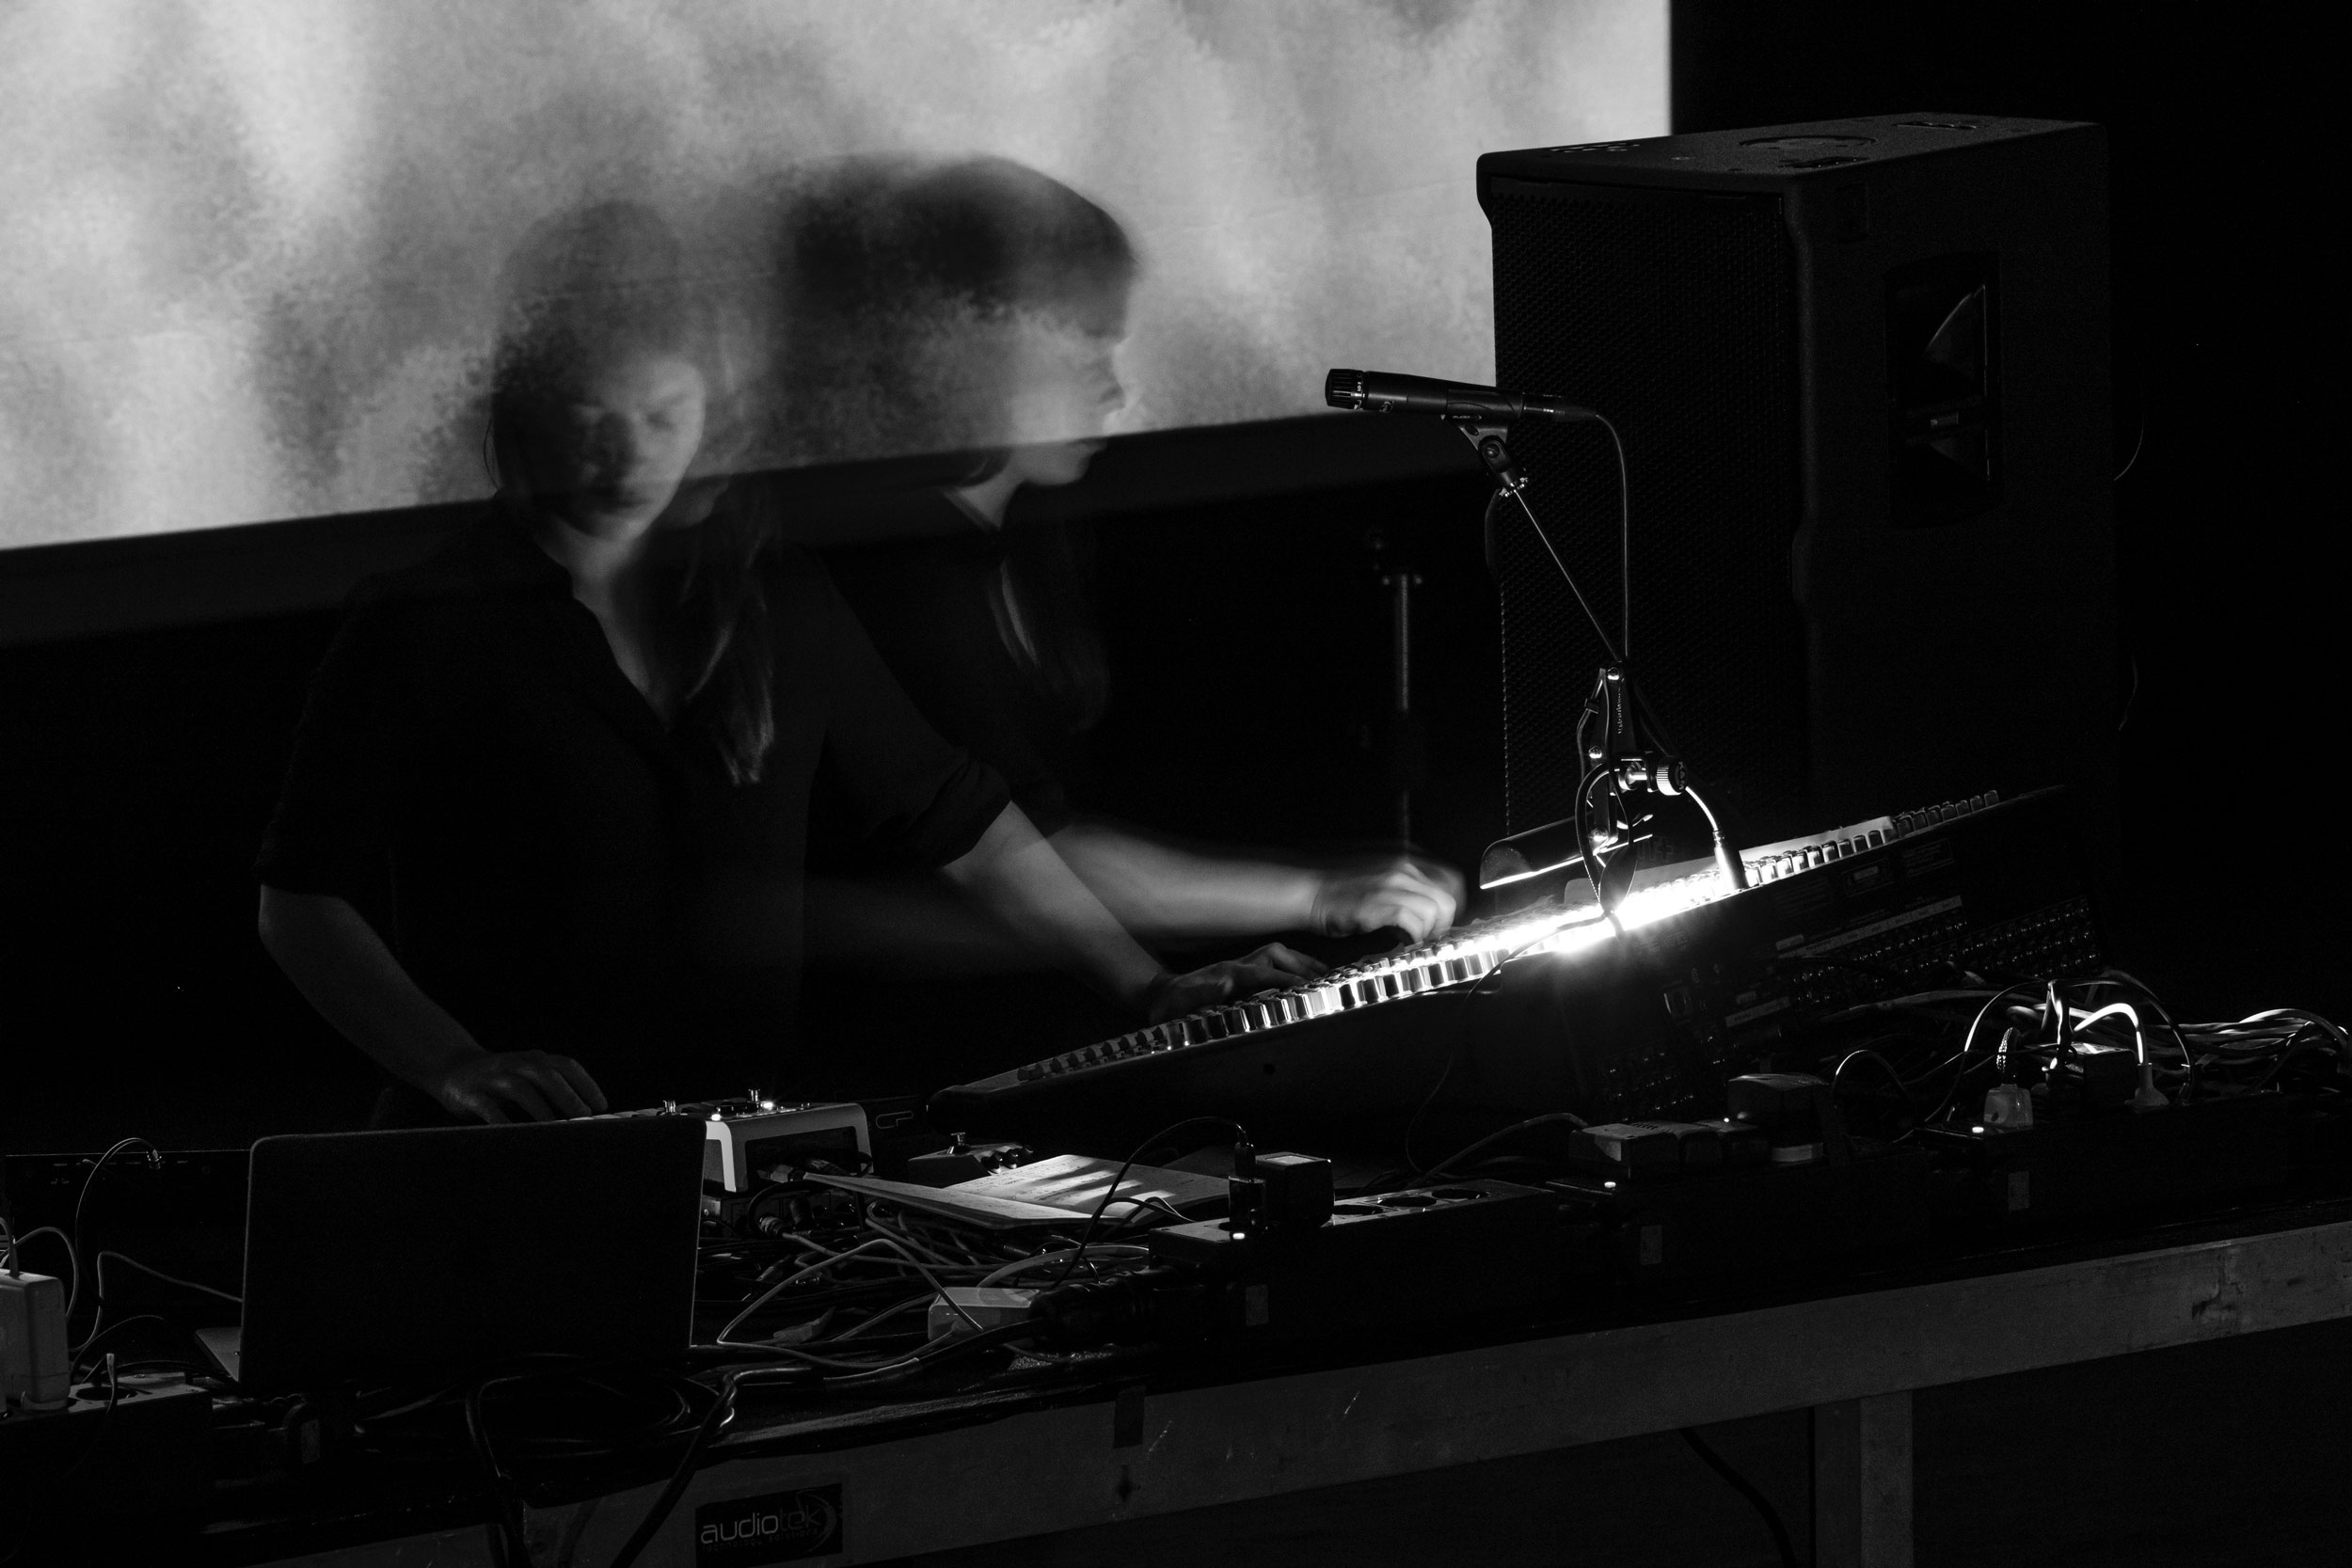 Grand River plays with limitations and freedom in her expansive ambient sound